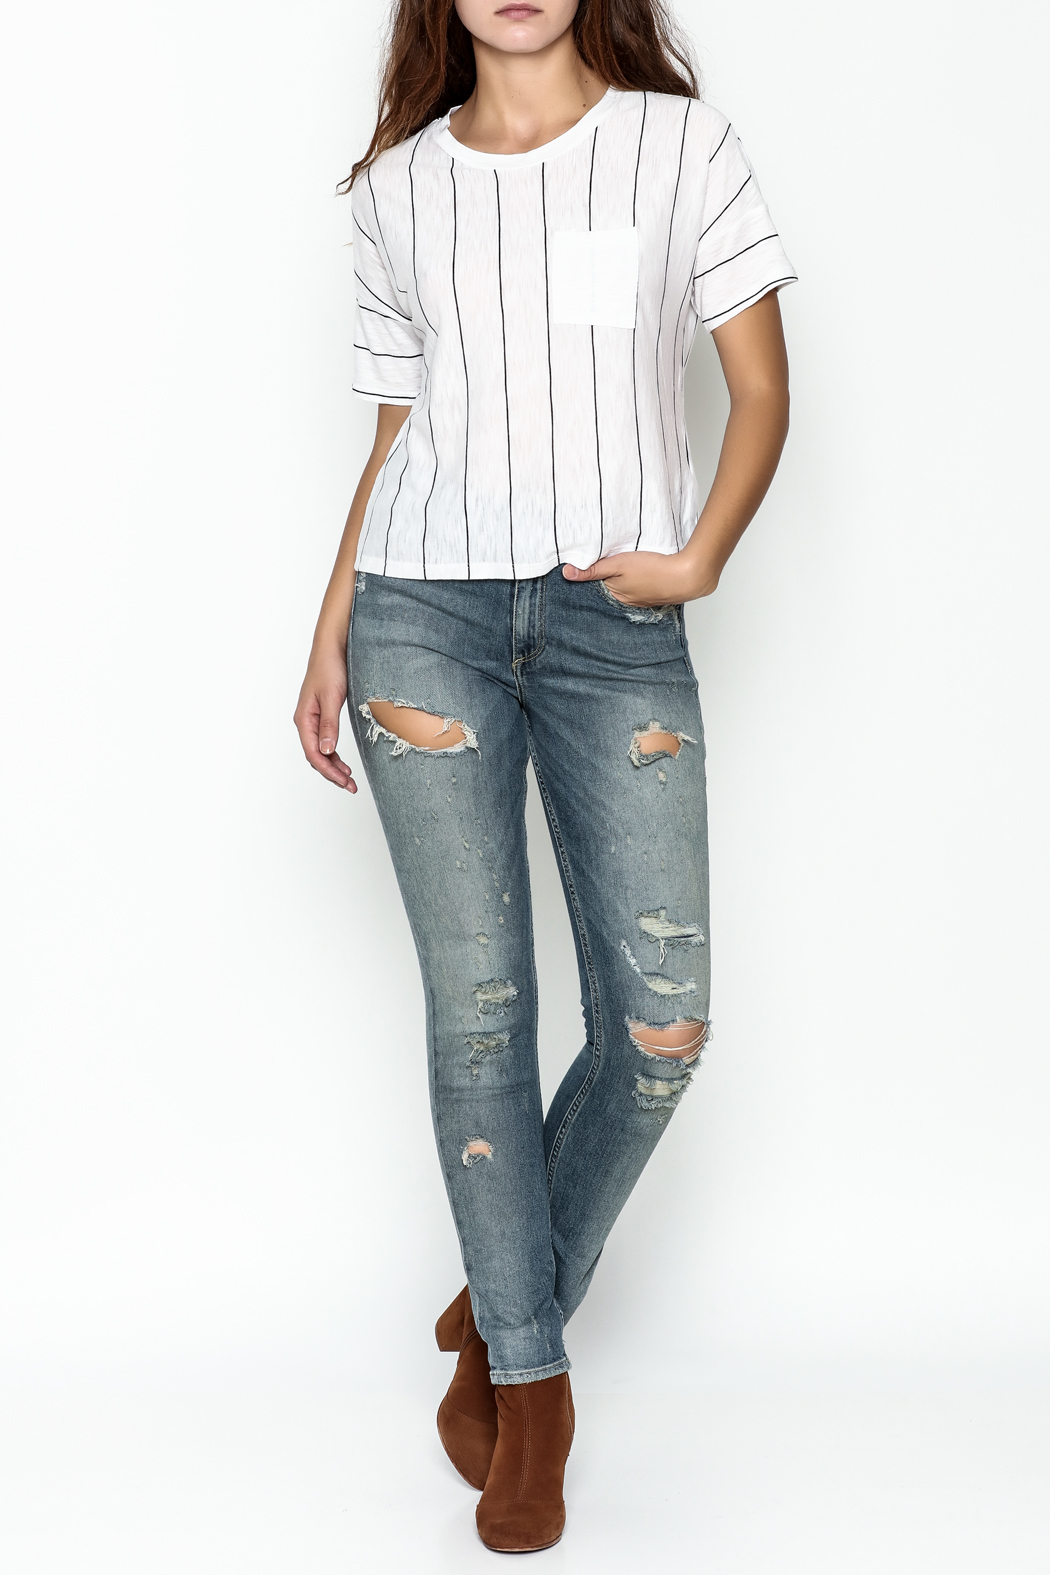 Michelle by Comune Striped Front Pocket Tee - Side Cropped Image